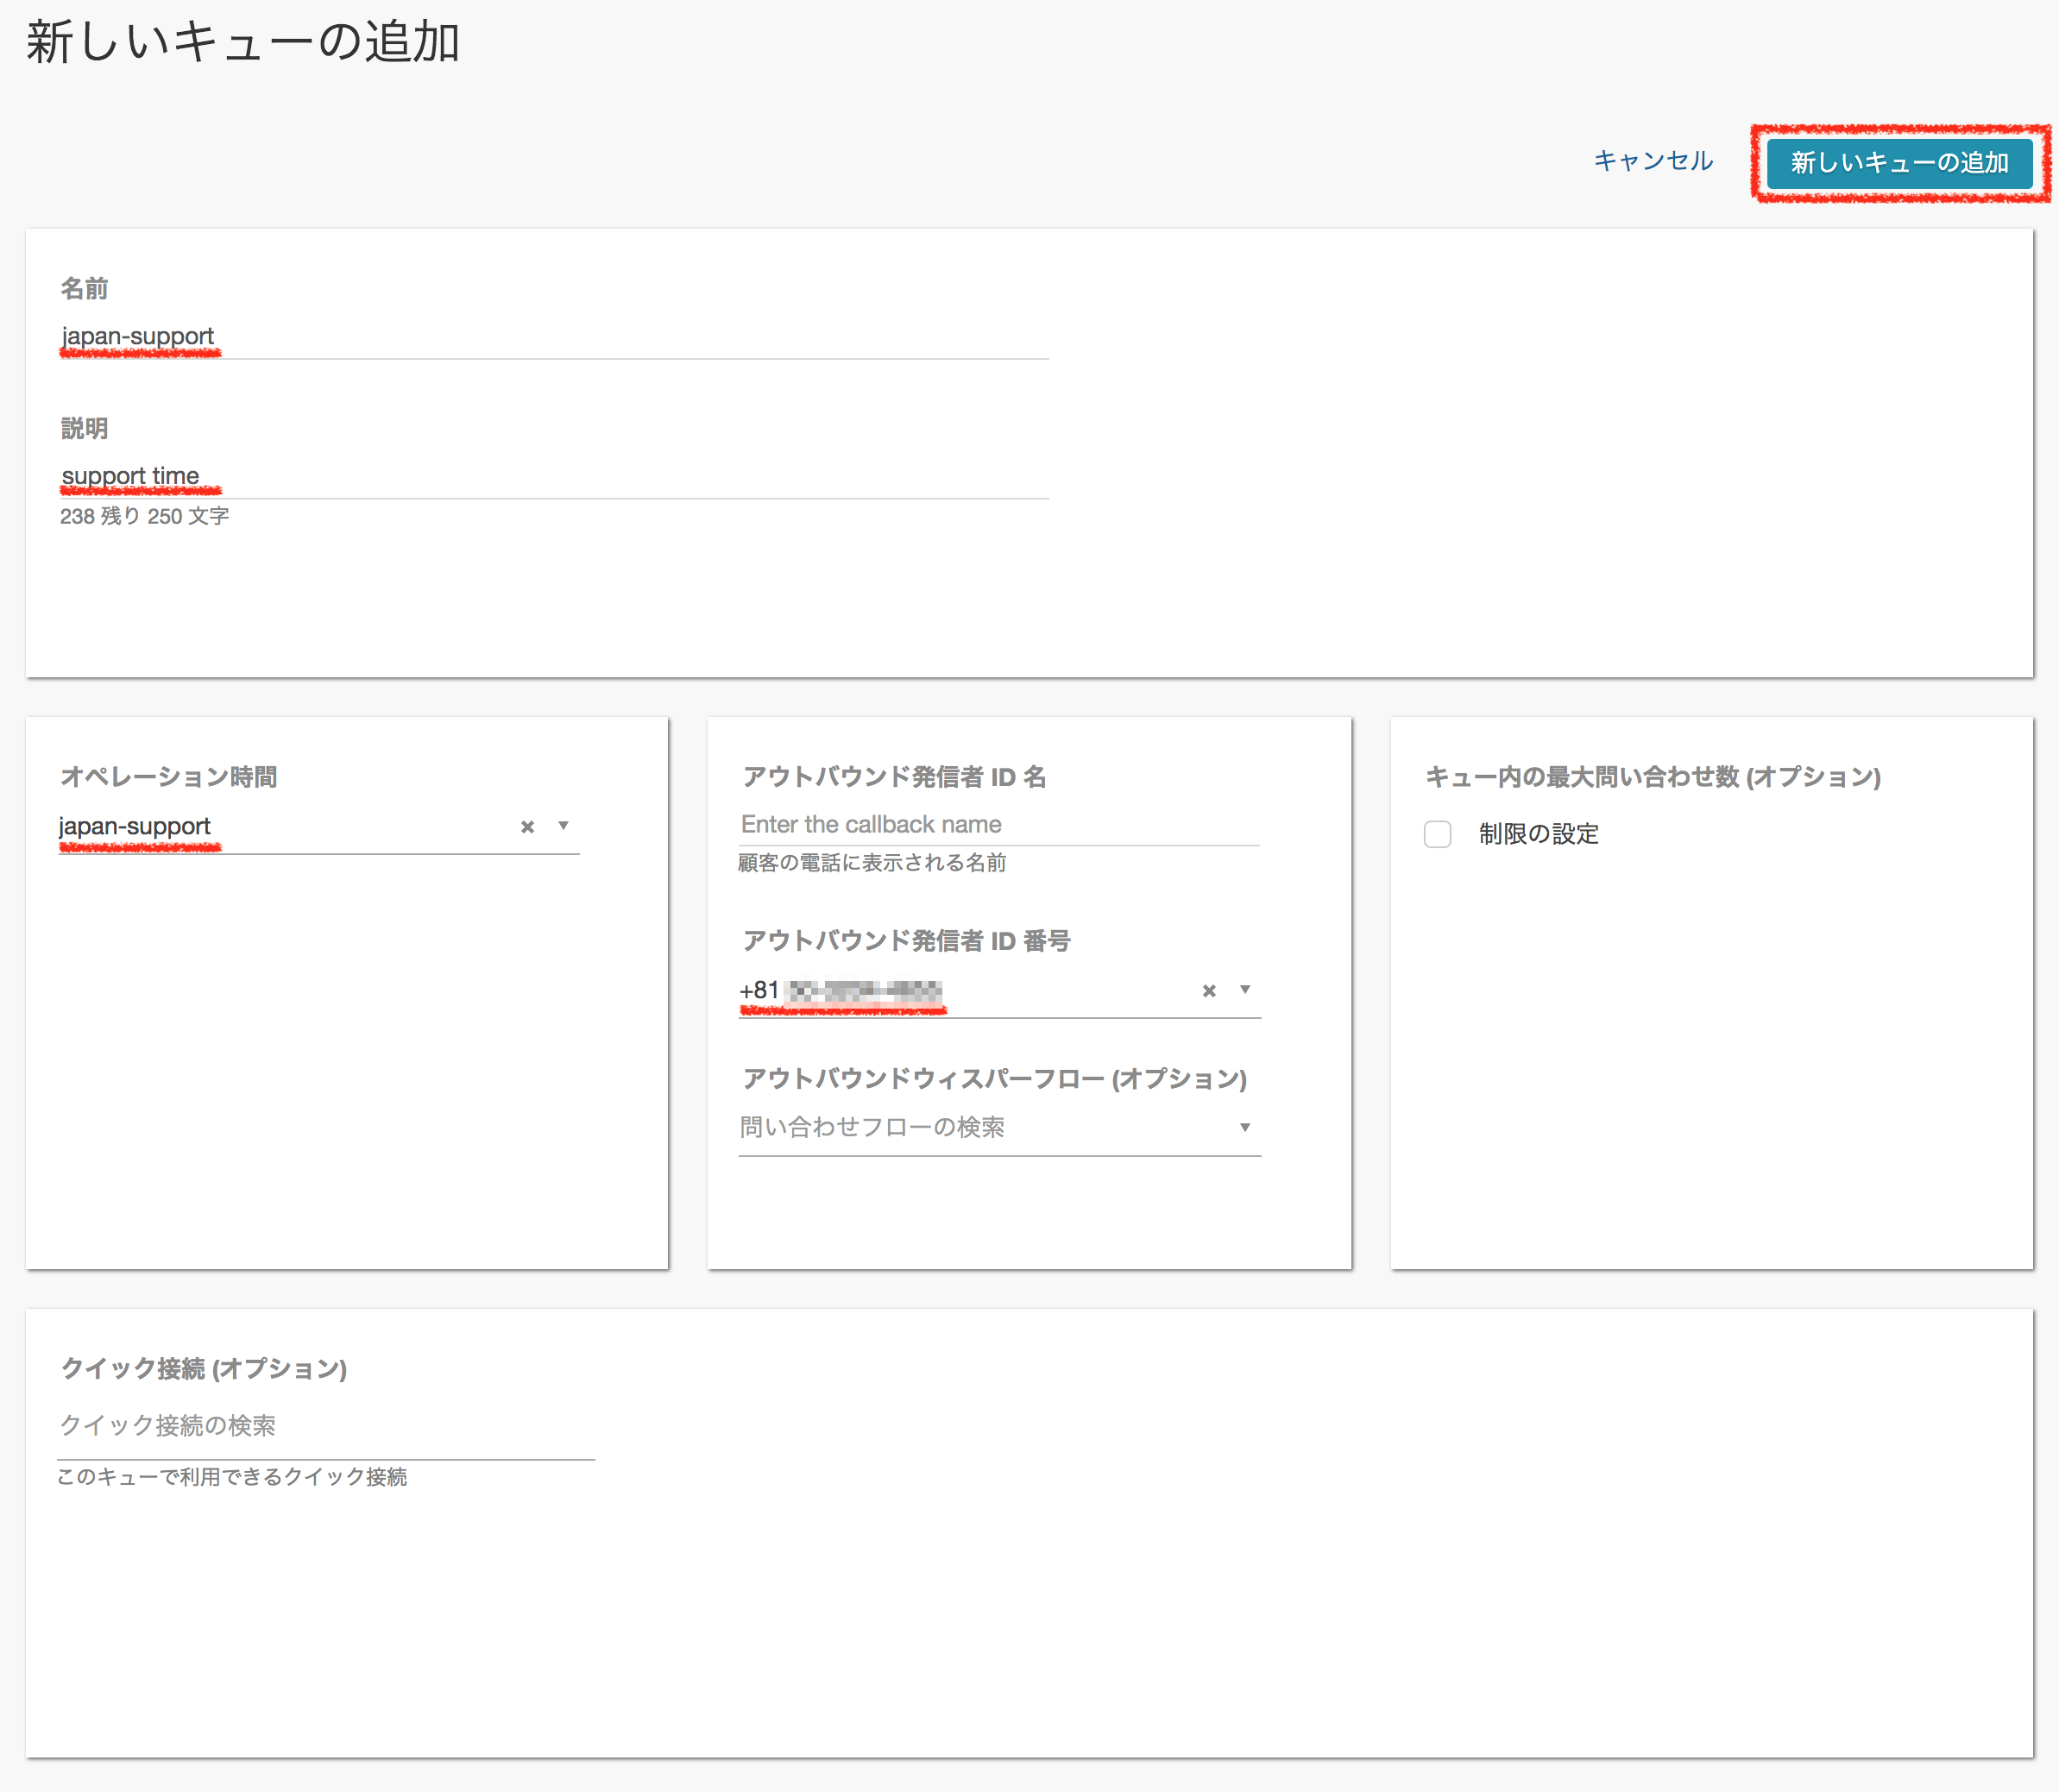 screencapture-kooooohei-awsapps-connect-queues-create-1517227855838.png